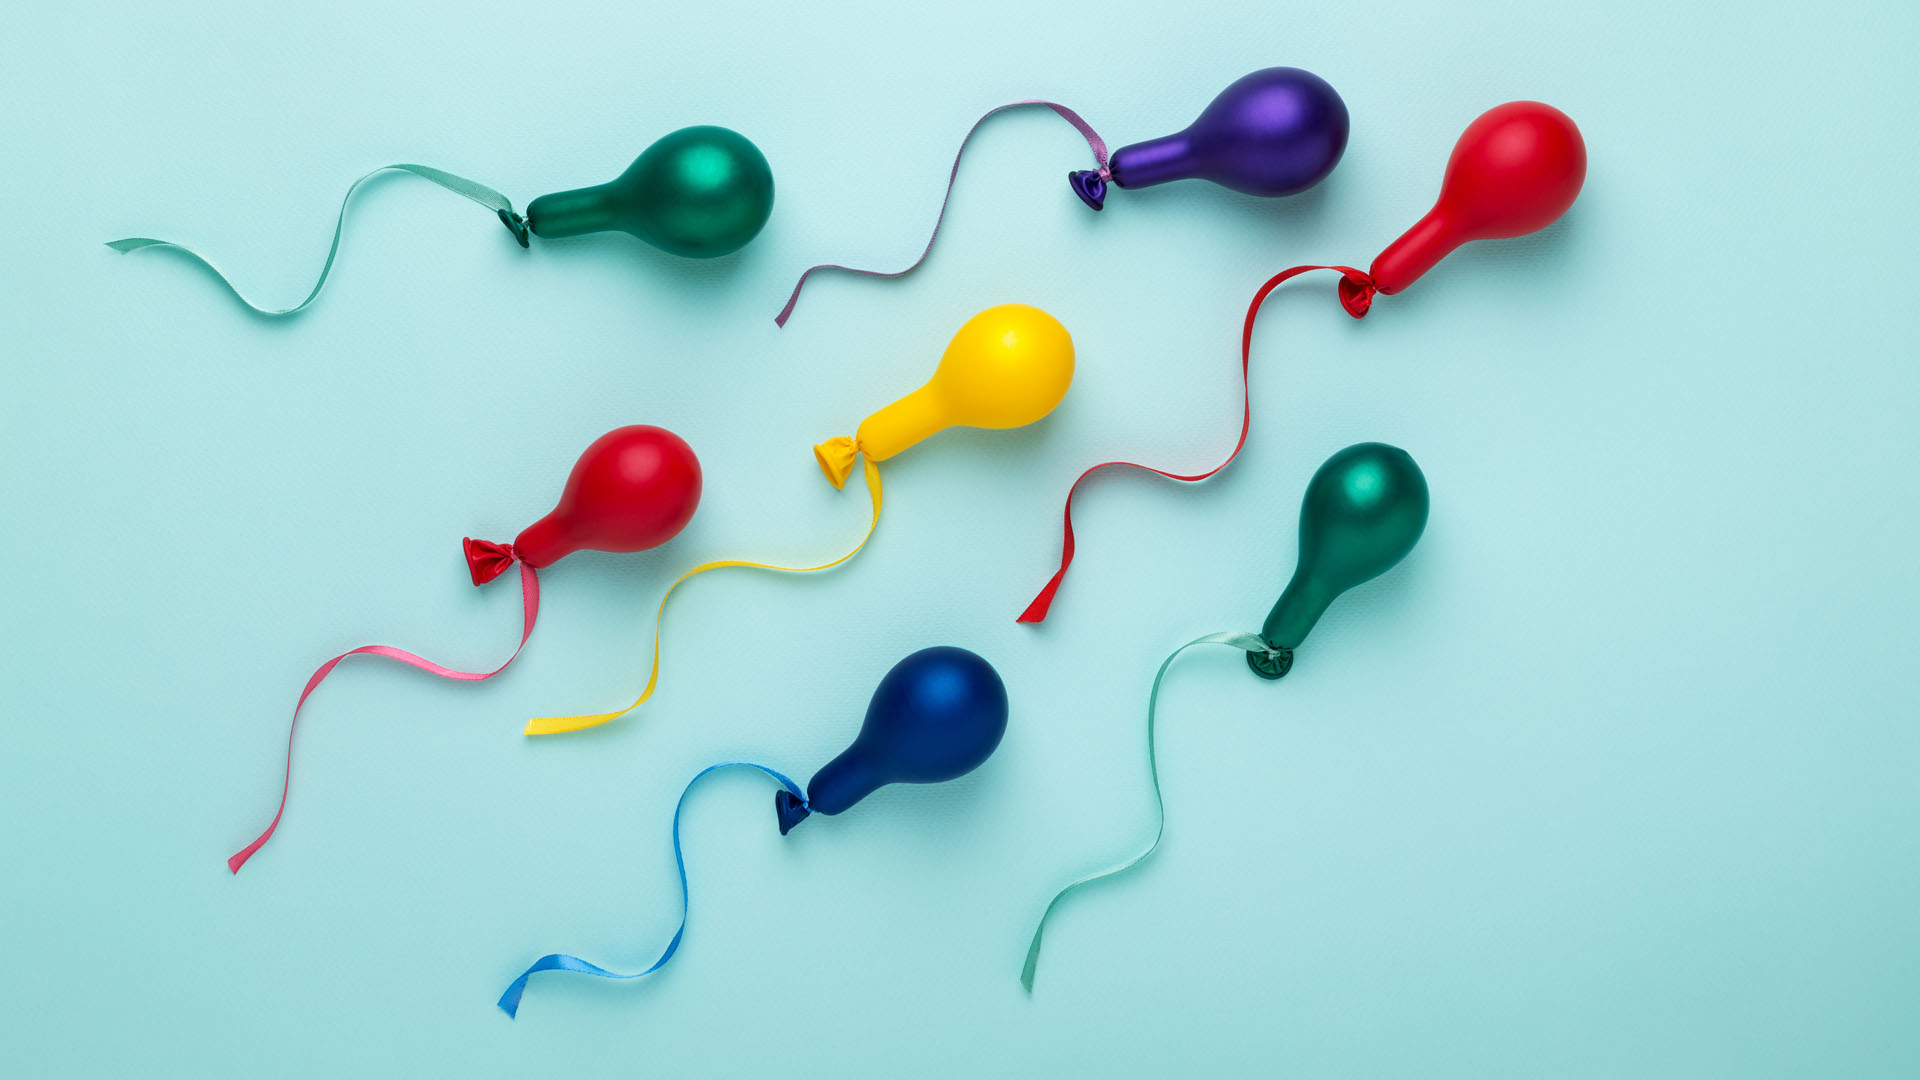 Acupuncture May Help Improve Sperm Quality